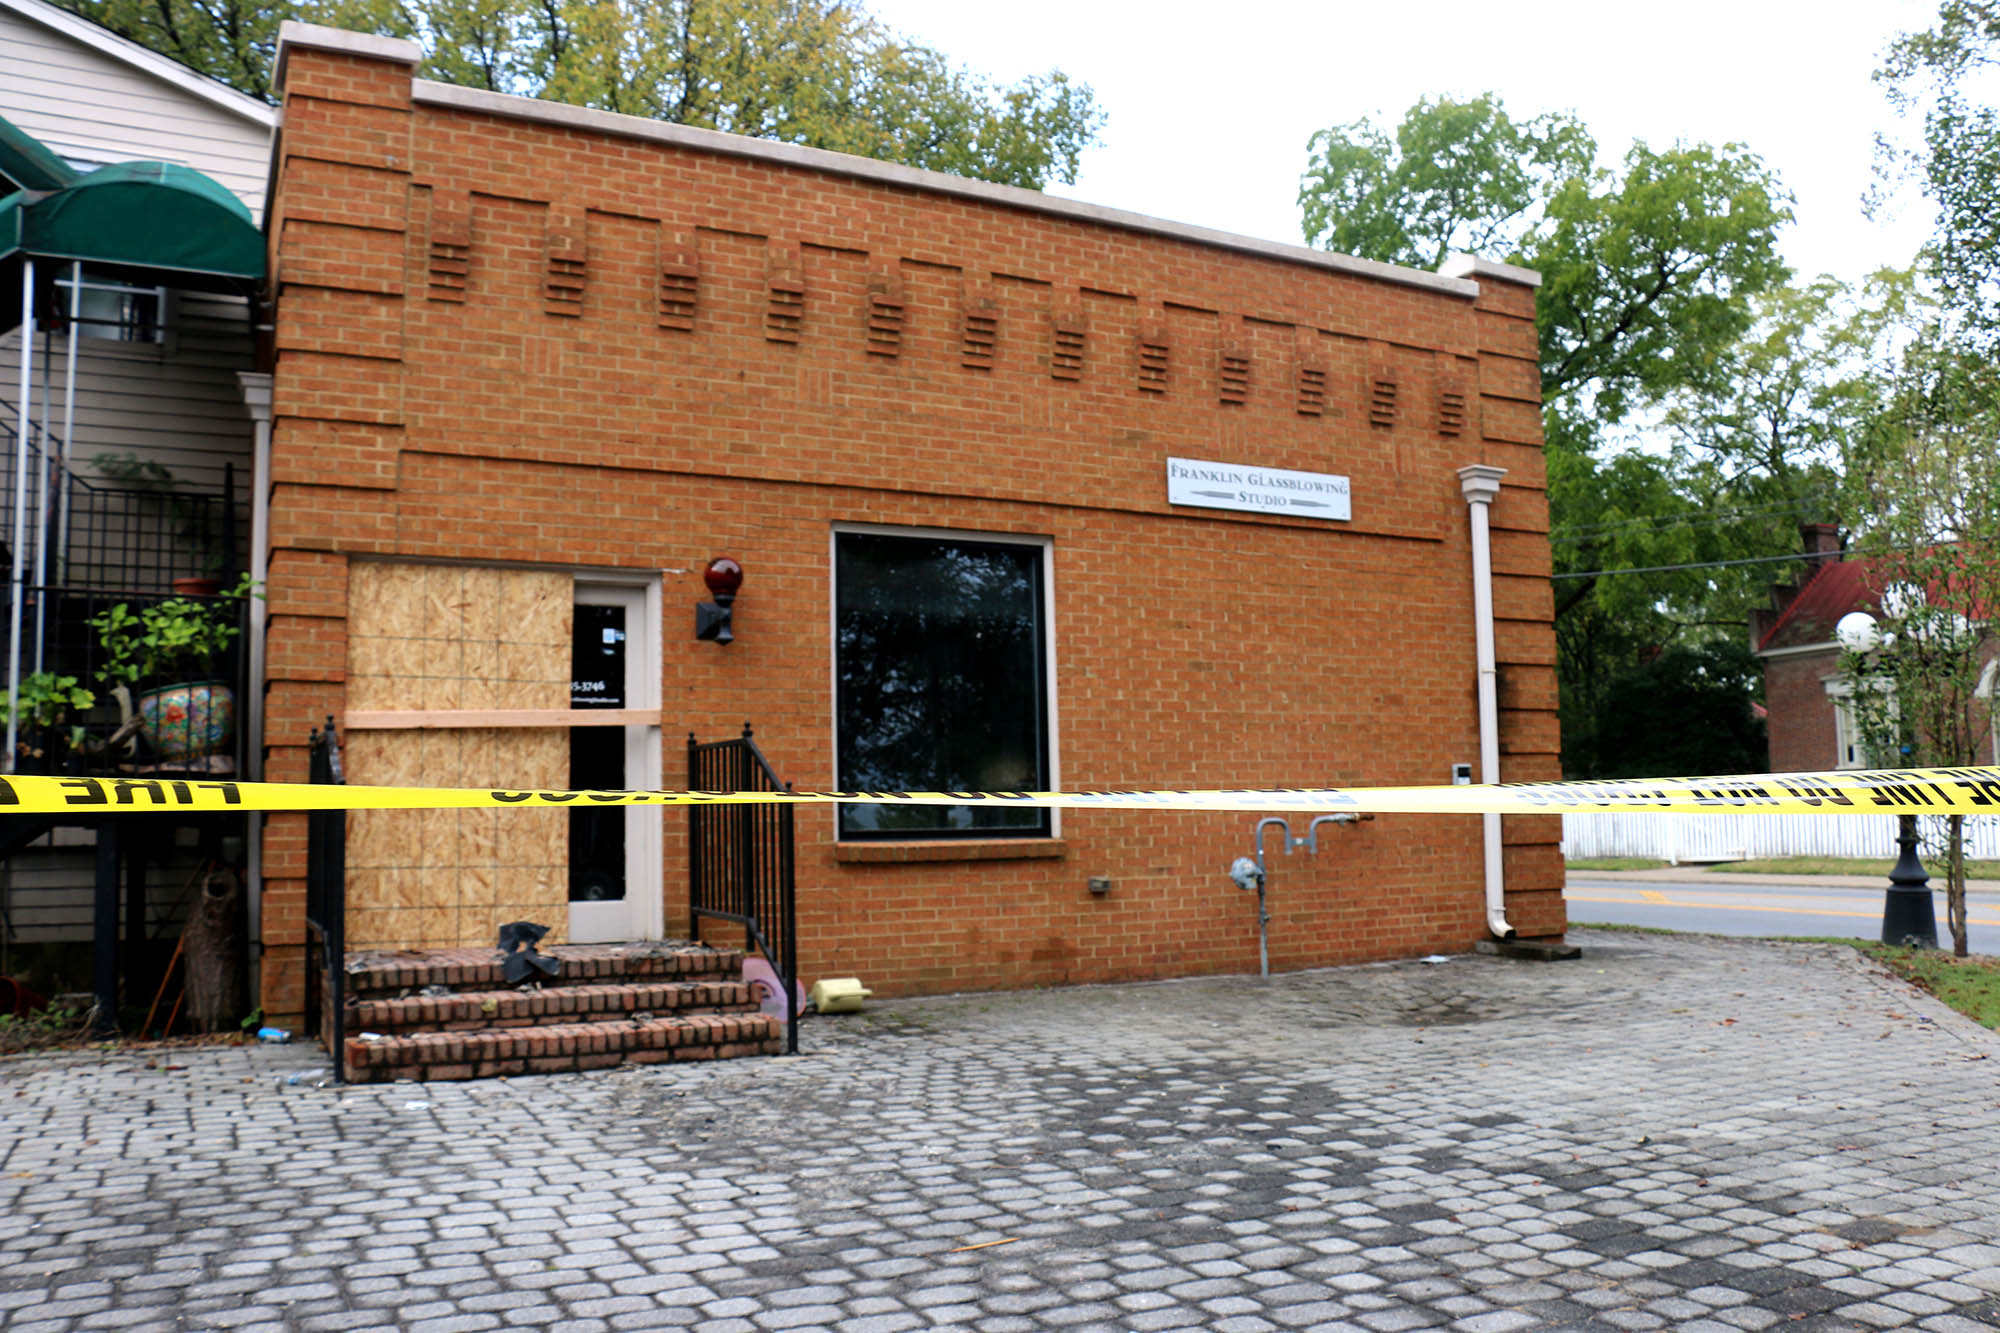 Franklin Glassblowing Studio could be total loss after fire